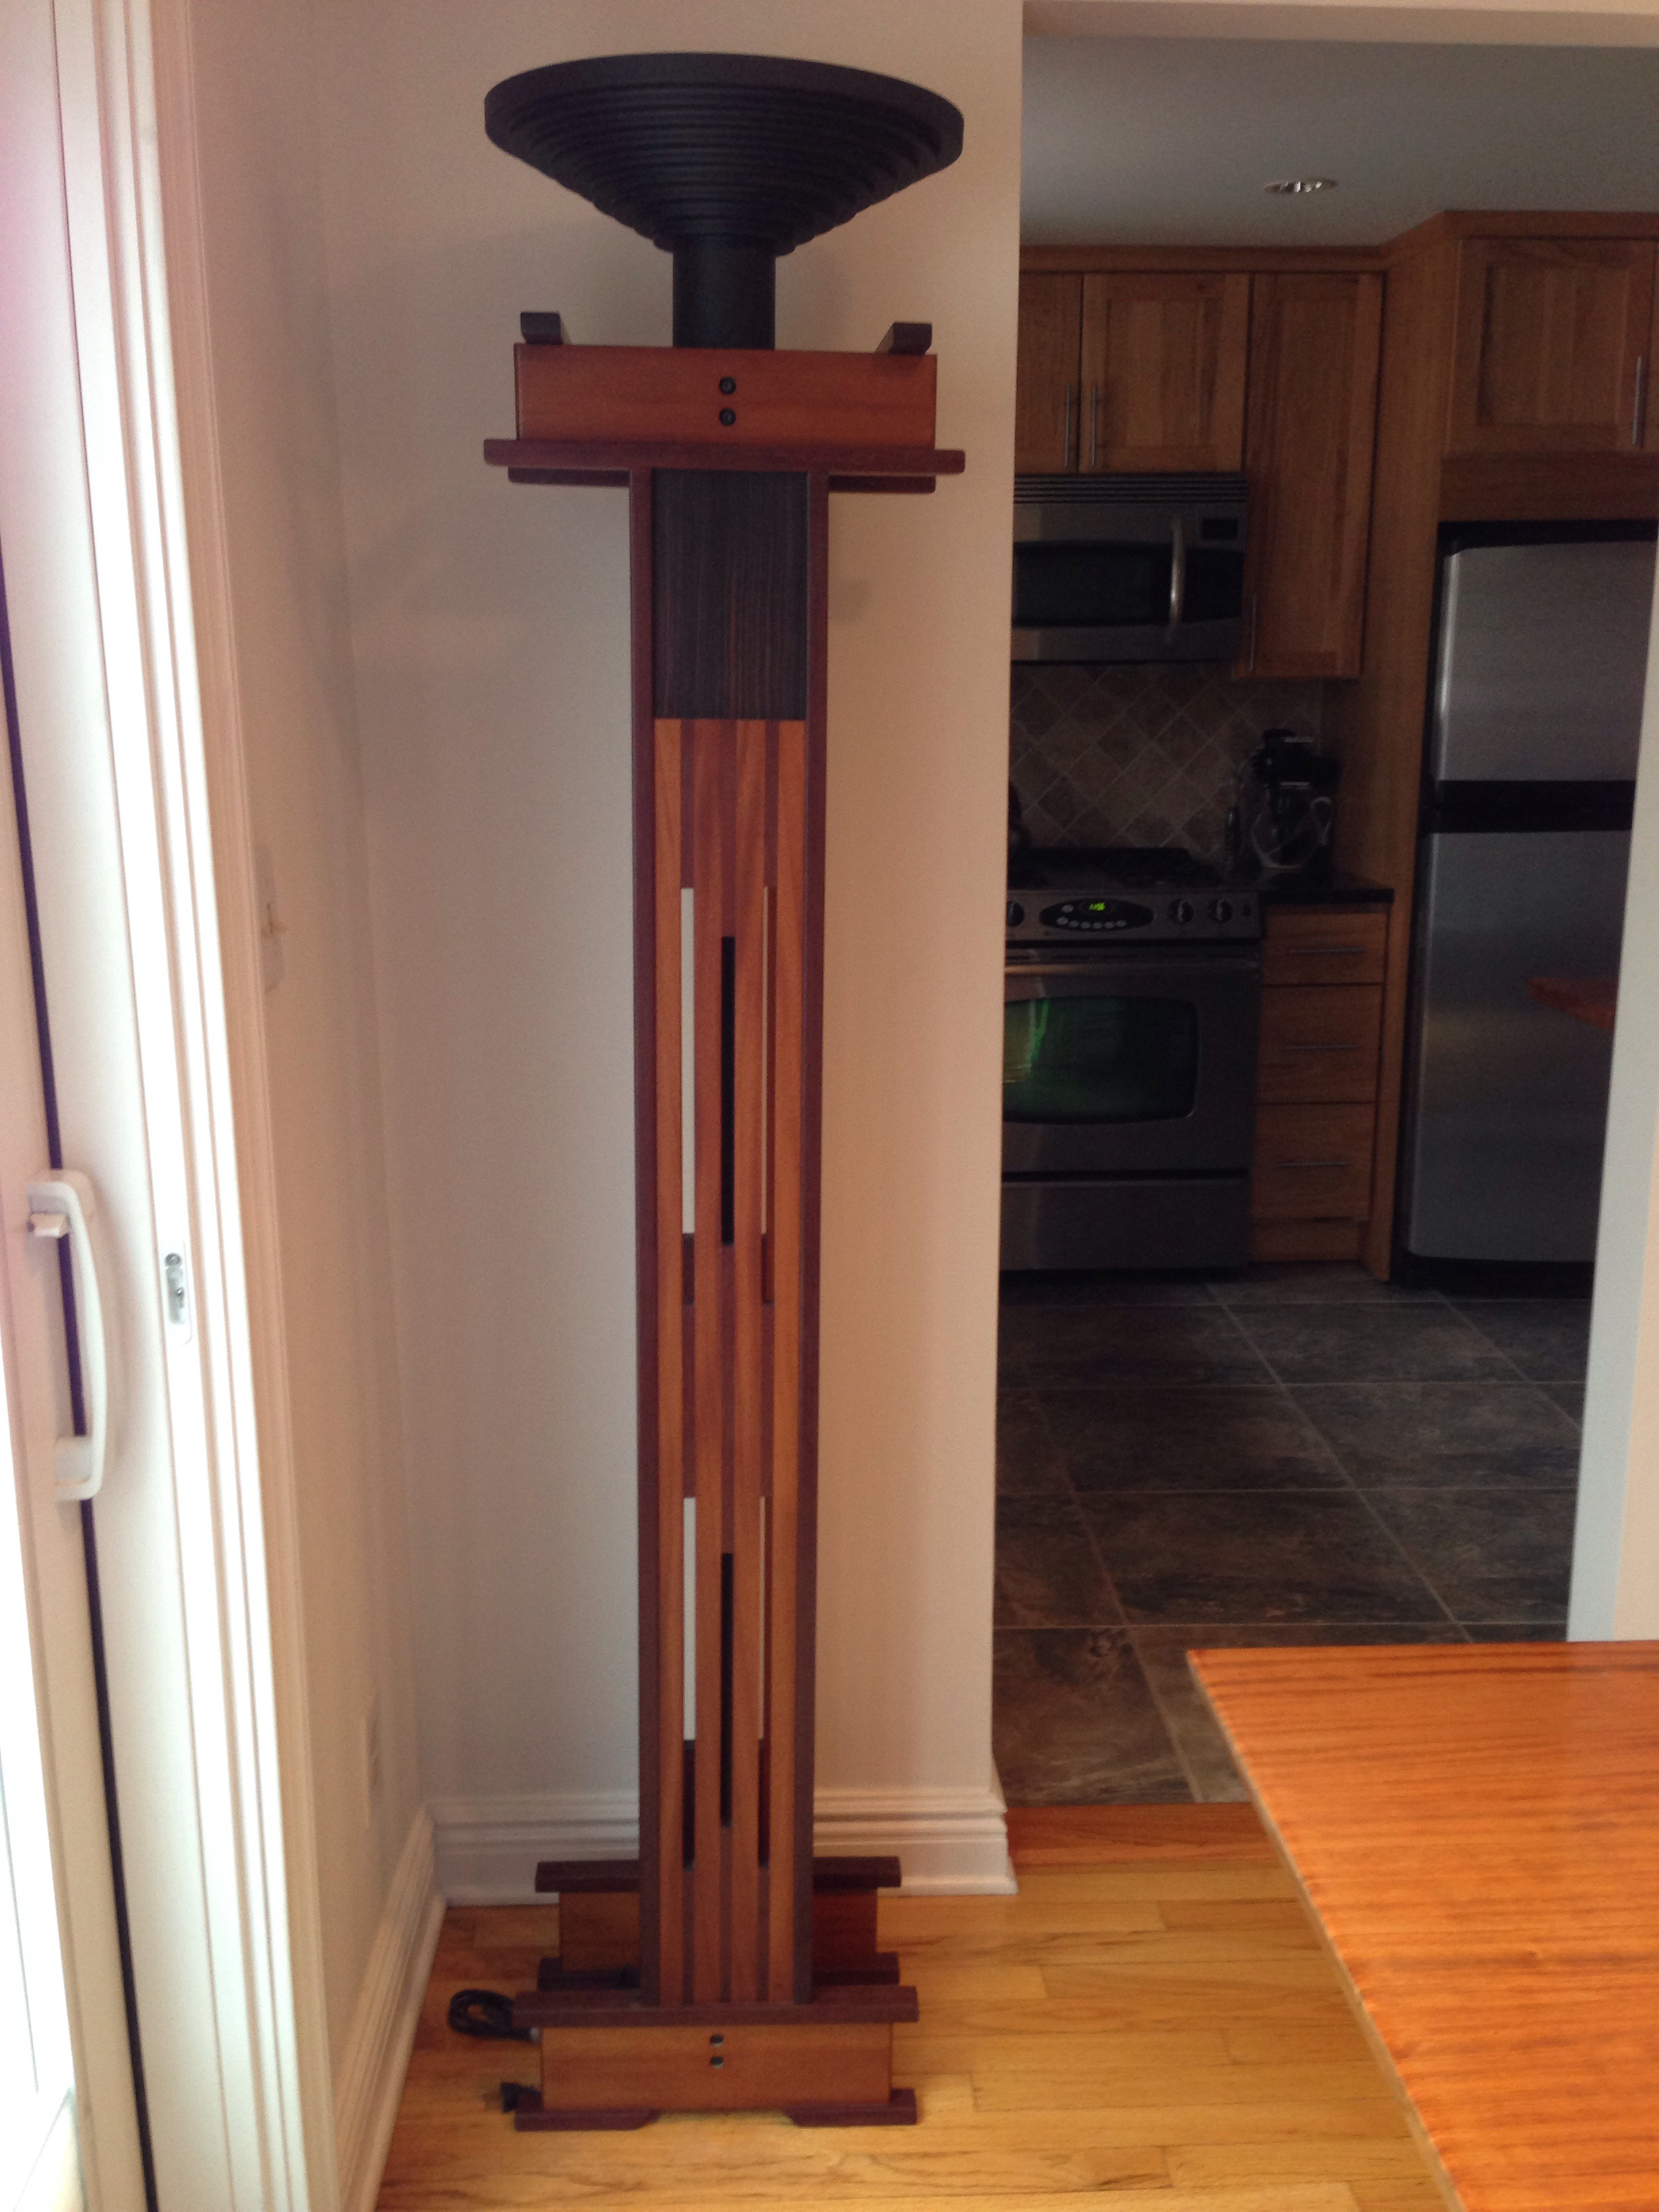 Handcrafted Mission Style Floor Lamp By Master Craftsman: Anthony Beverly  Of Woodenworks. Solid Wood